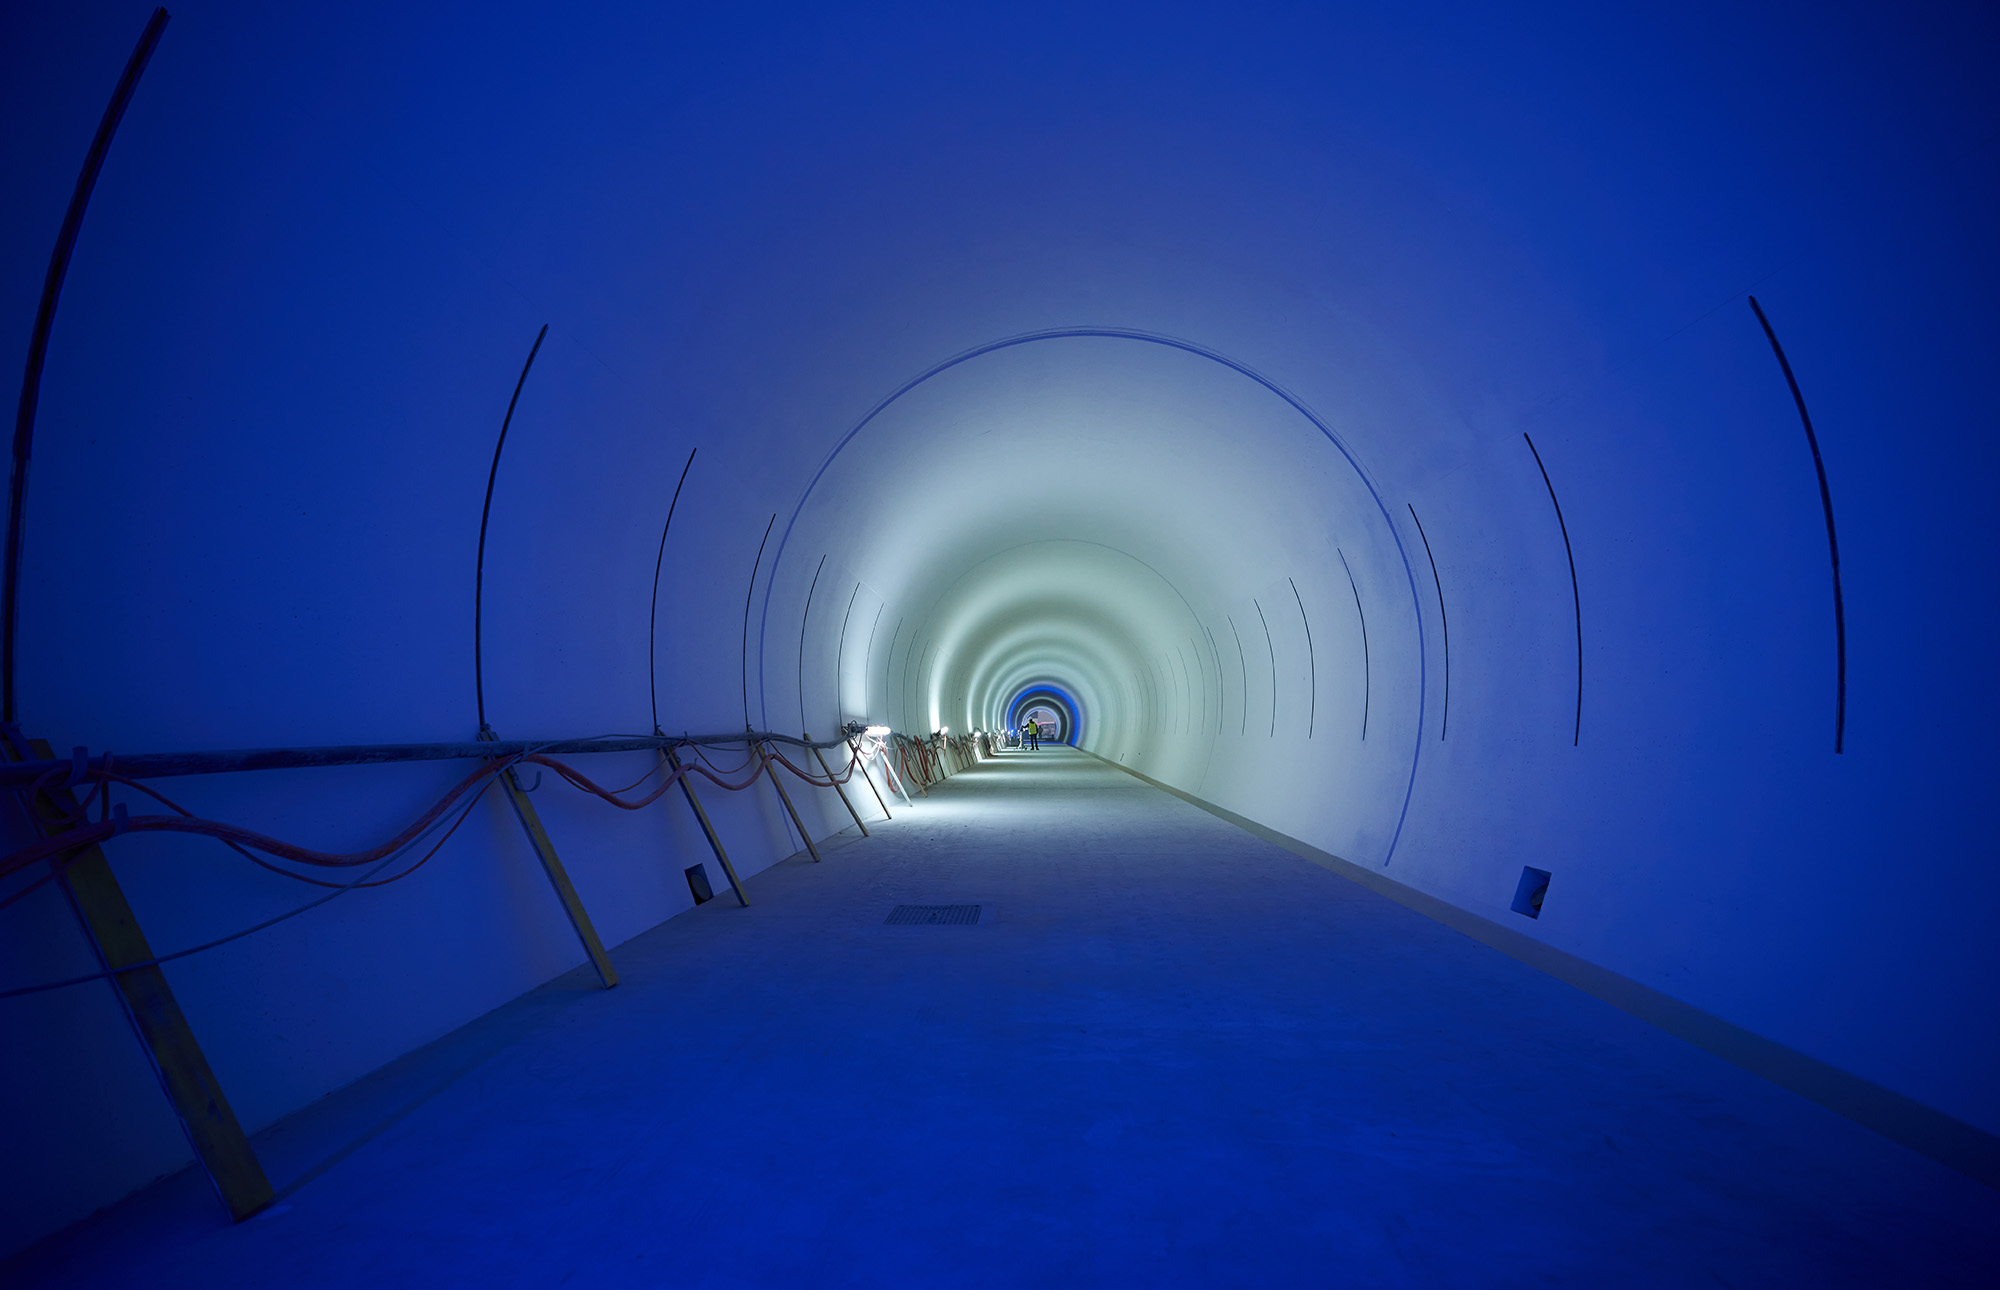 Clean, white tunnel illuminated by blue lights